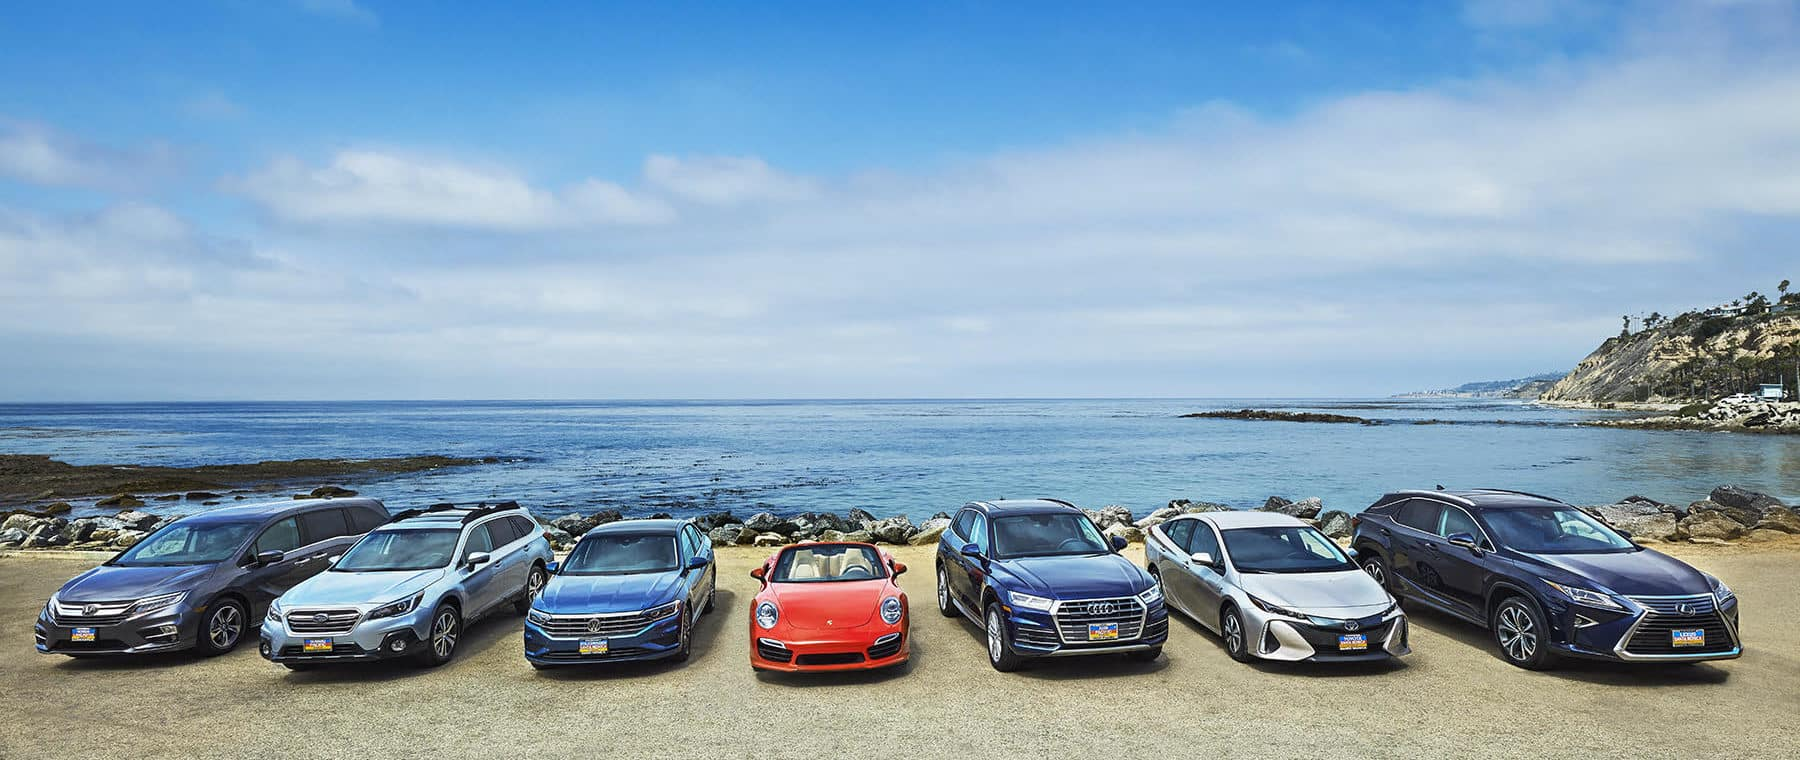 Used Car Lot >> Lacarguy Car Dealerships In Los Angeles New Used Cars La